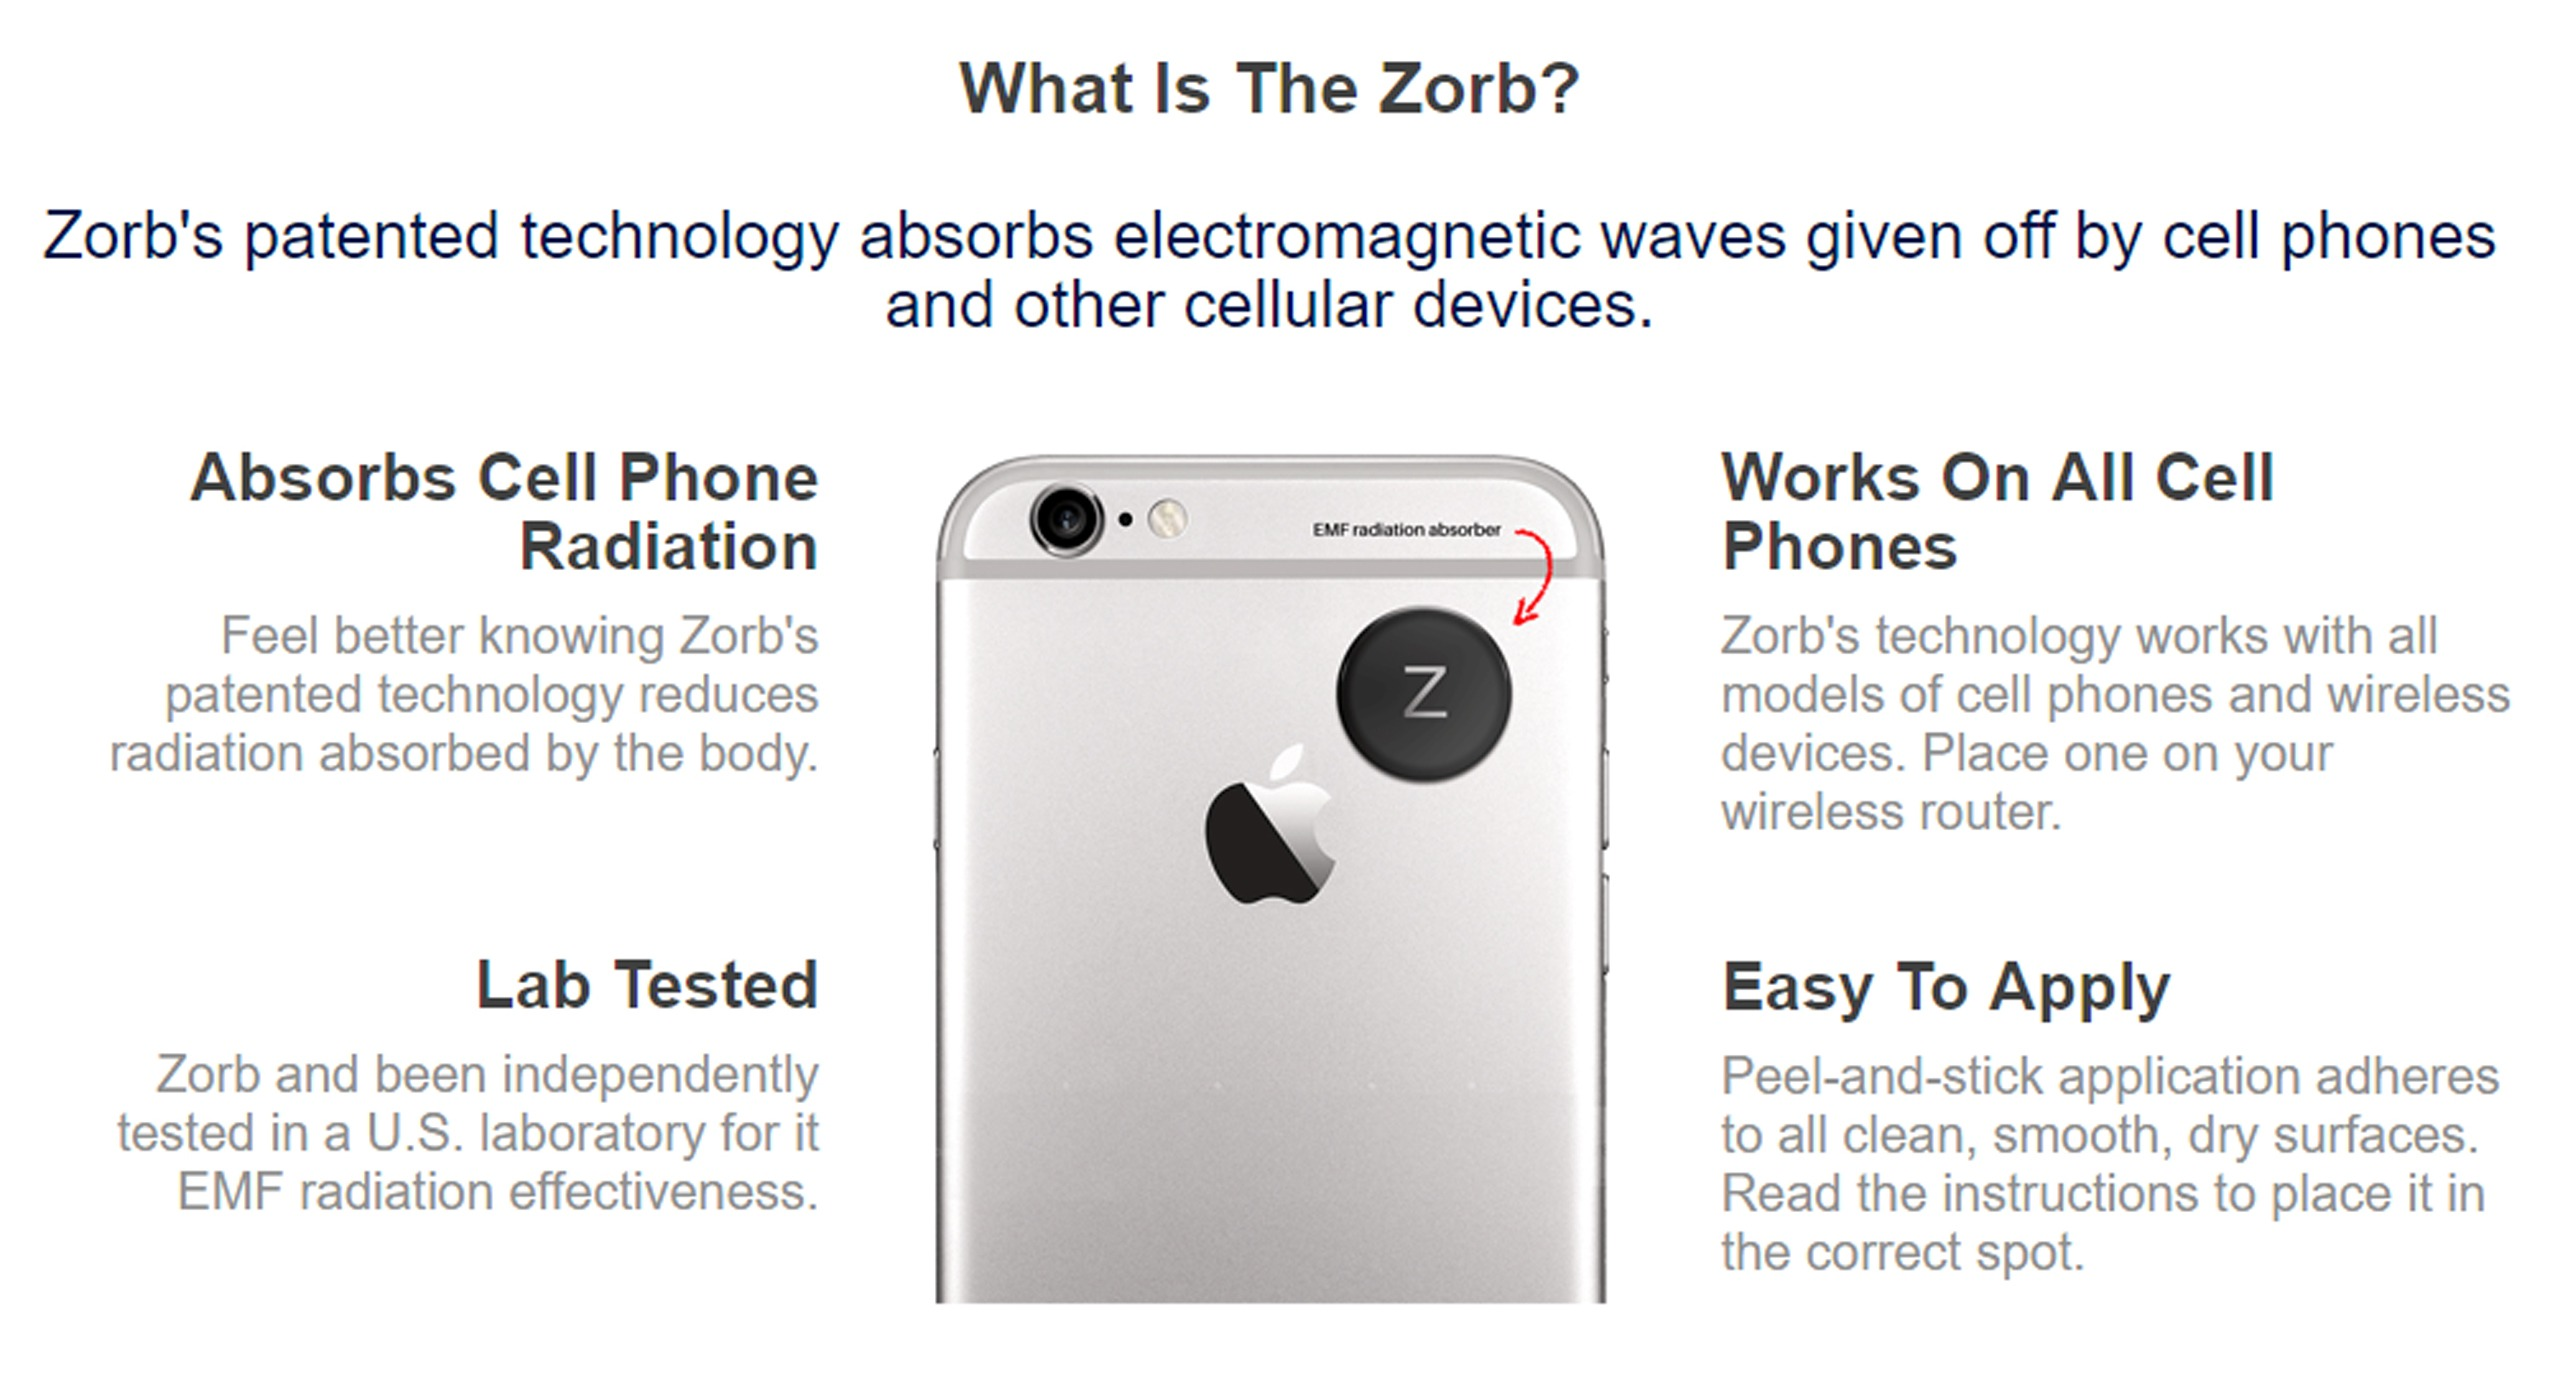 What is zorb and how it protects from cell phone EMF